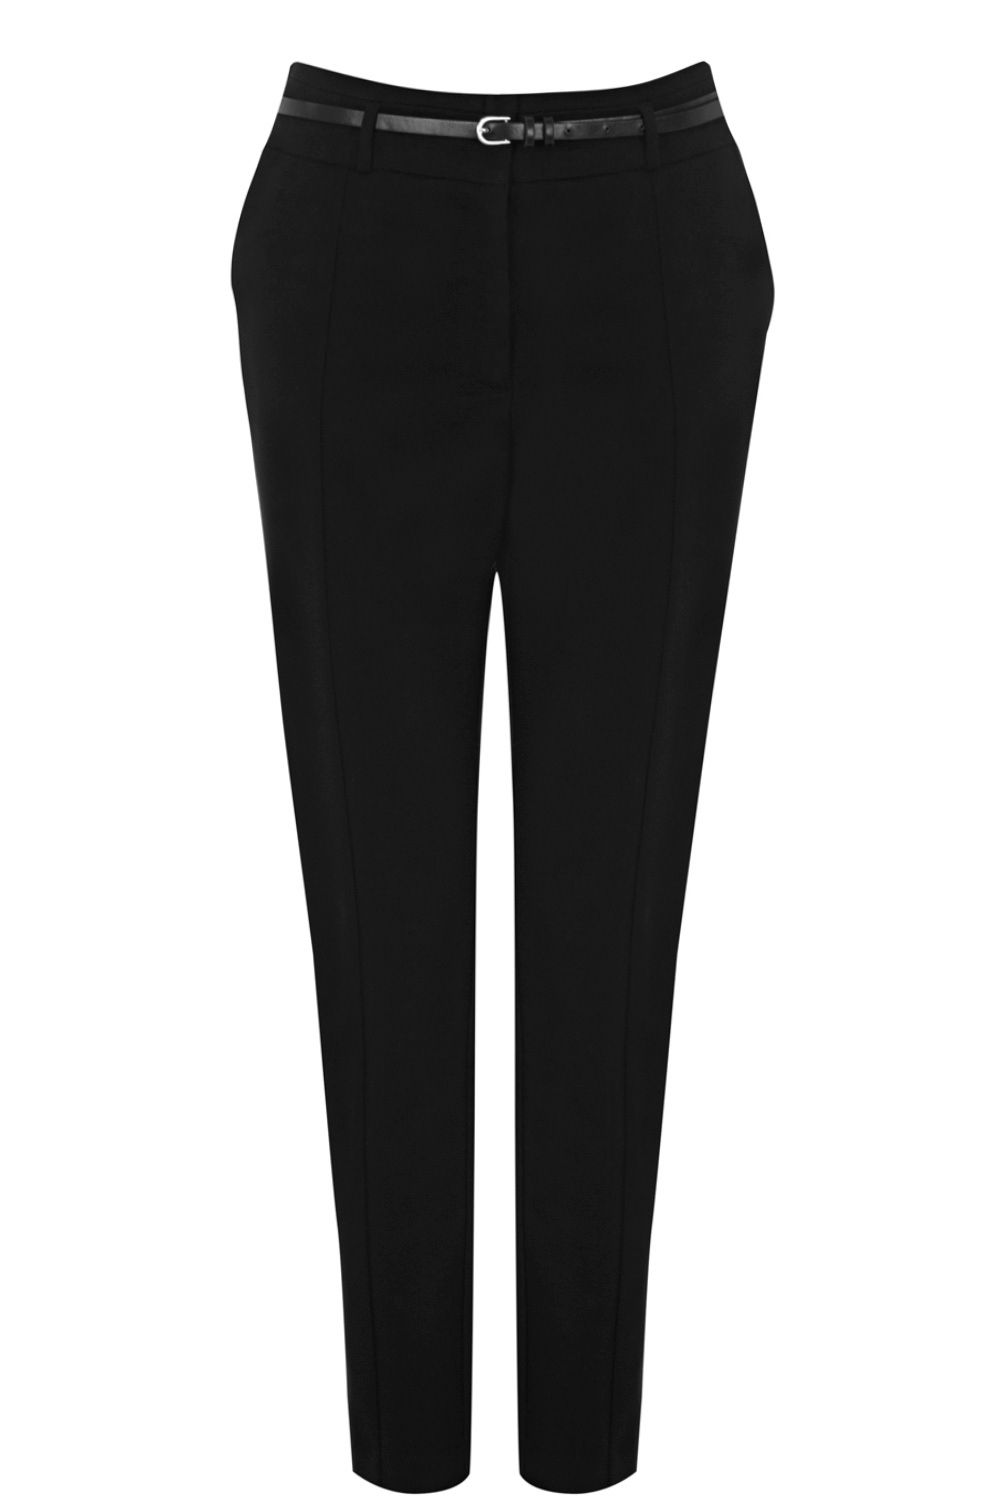 Cotton belted trouser